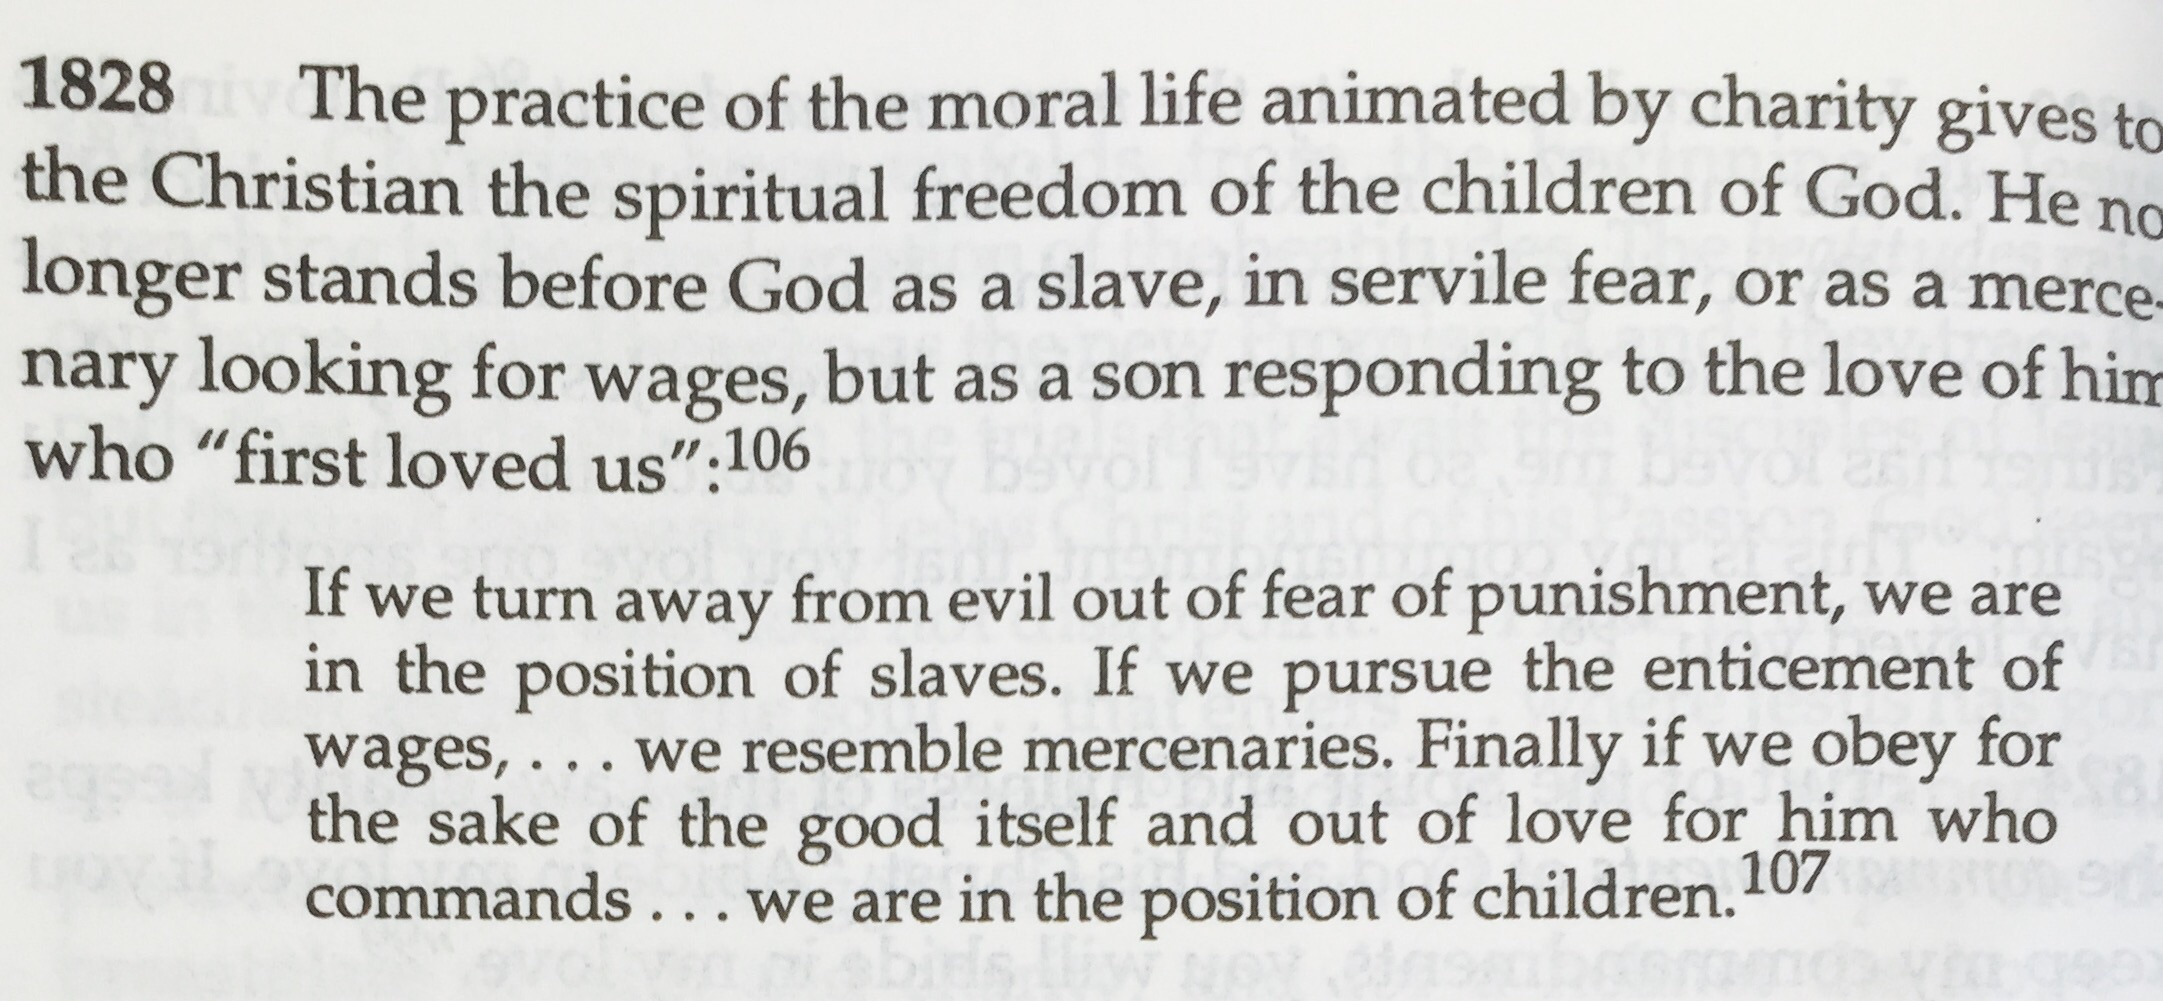 The Catechism on the Virtue of Charity, with a quote from Saint Basil.